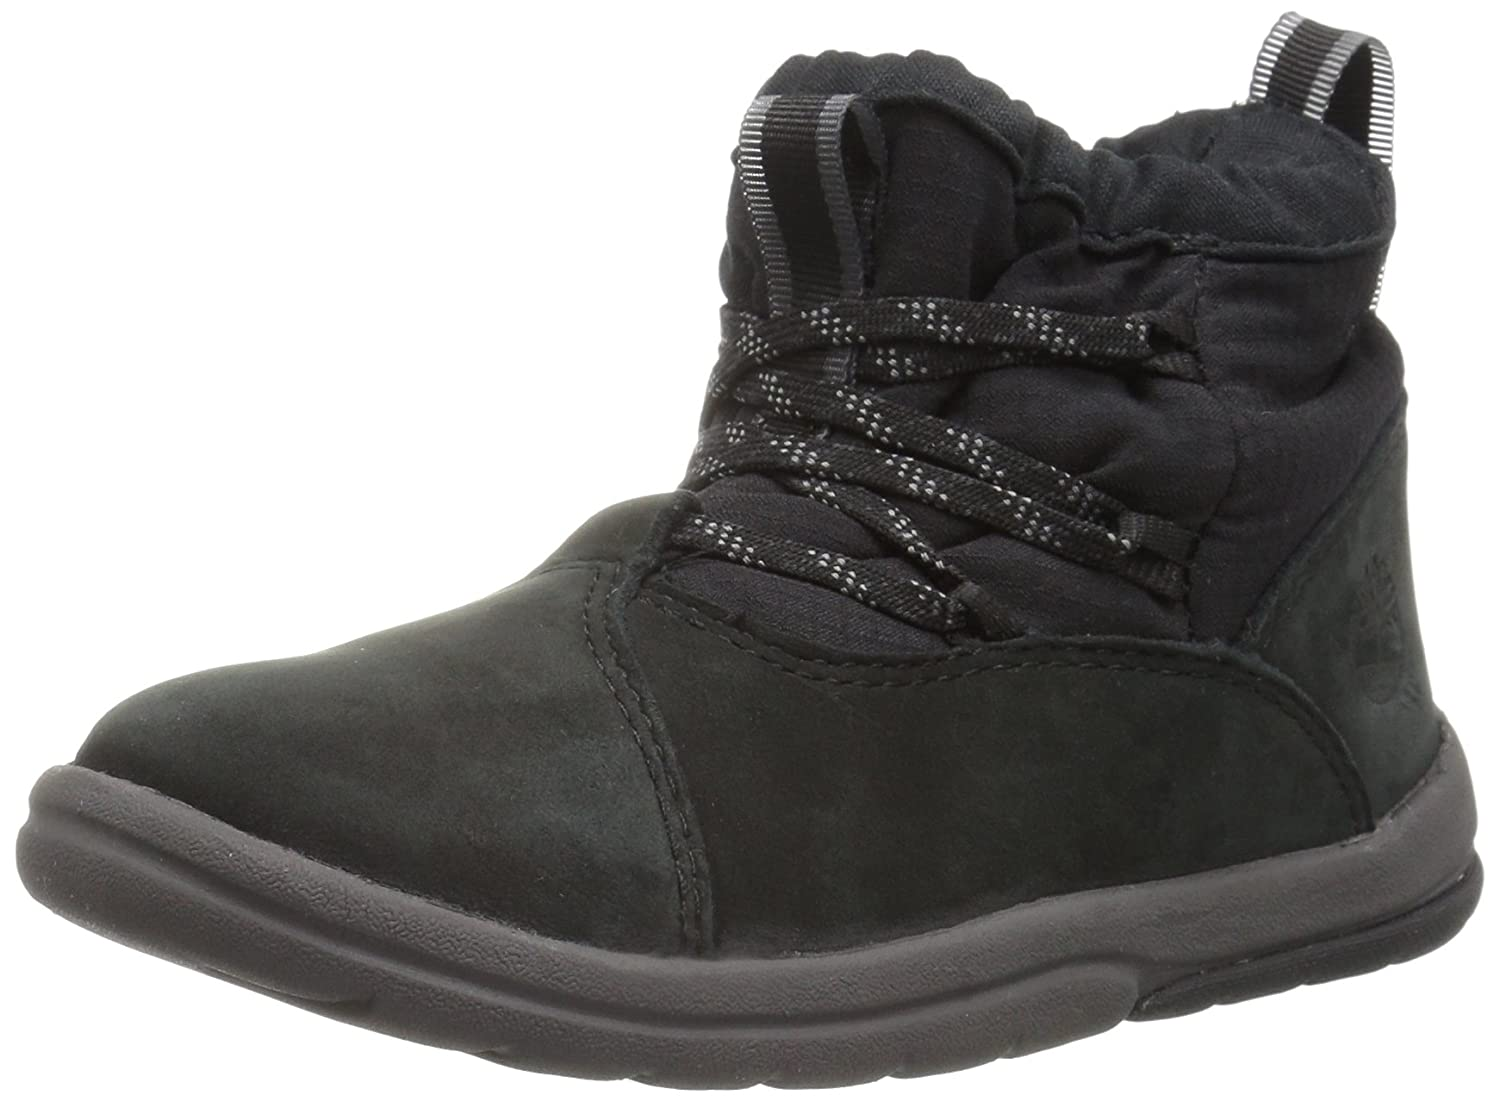 Timberland Kids Toddle Tracks Warm Fabric Leather Bootie Snow Boot